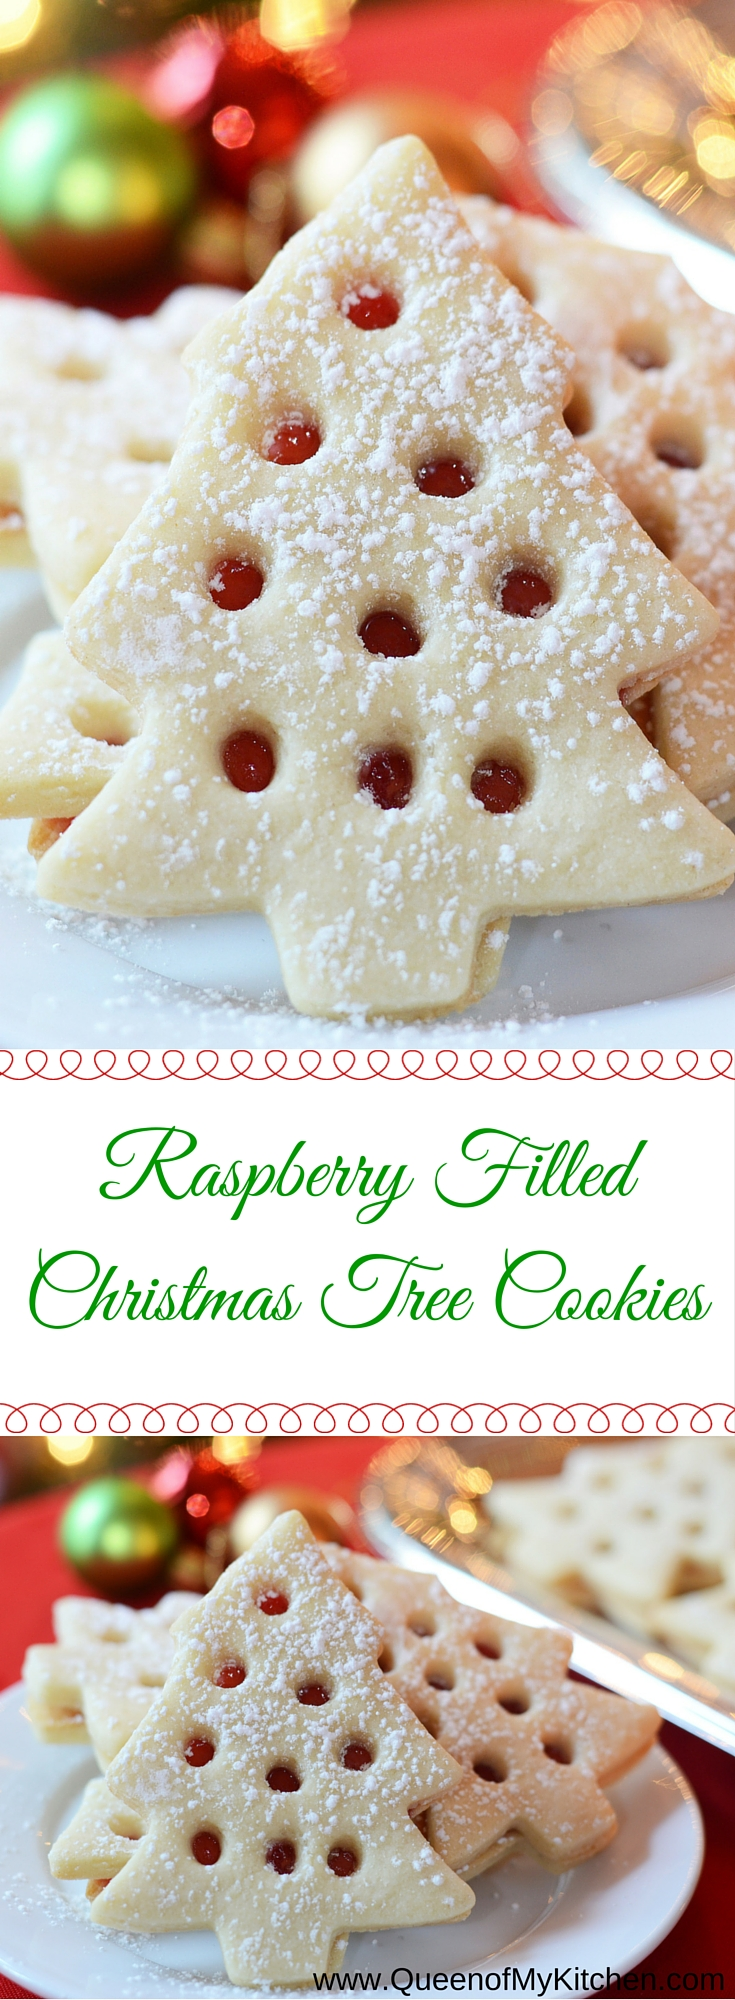 skip the mess involved in decorating christmas cookies with icing these raspberry filled christmas tree - Decorating Christmas Cookies